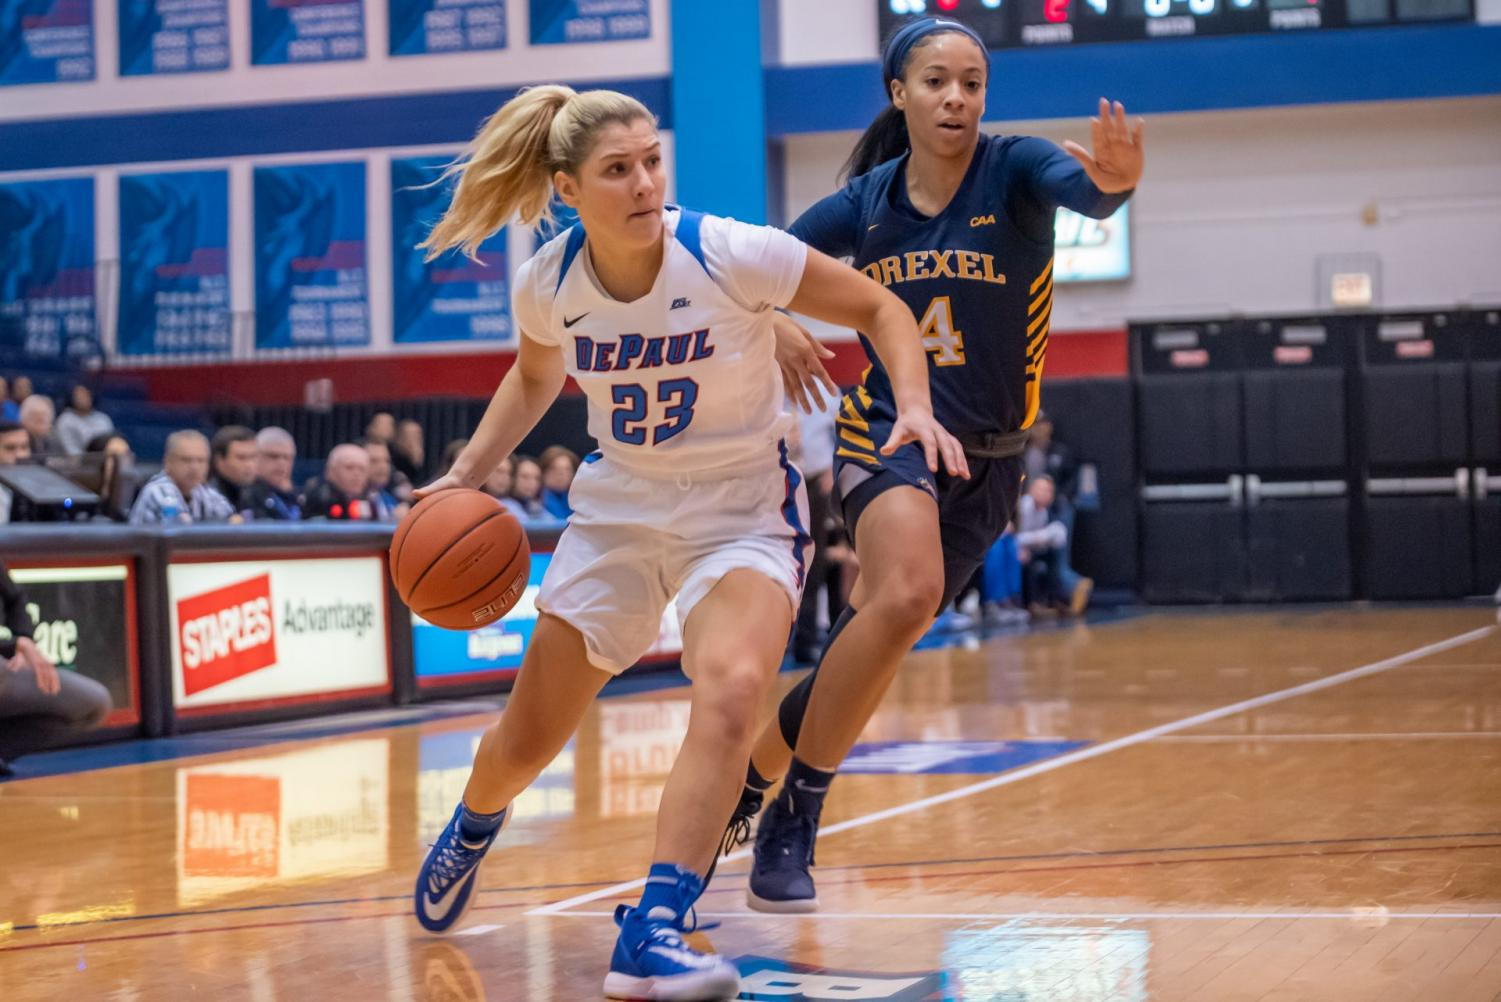 Guard Dee Bekelja dribbles into the lane against Drexel. Bekelja came off the bench to score 7 points for the Blue Demons.